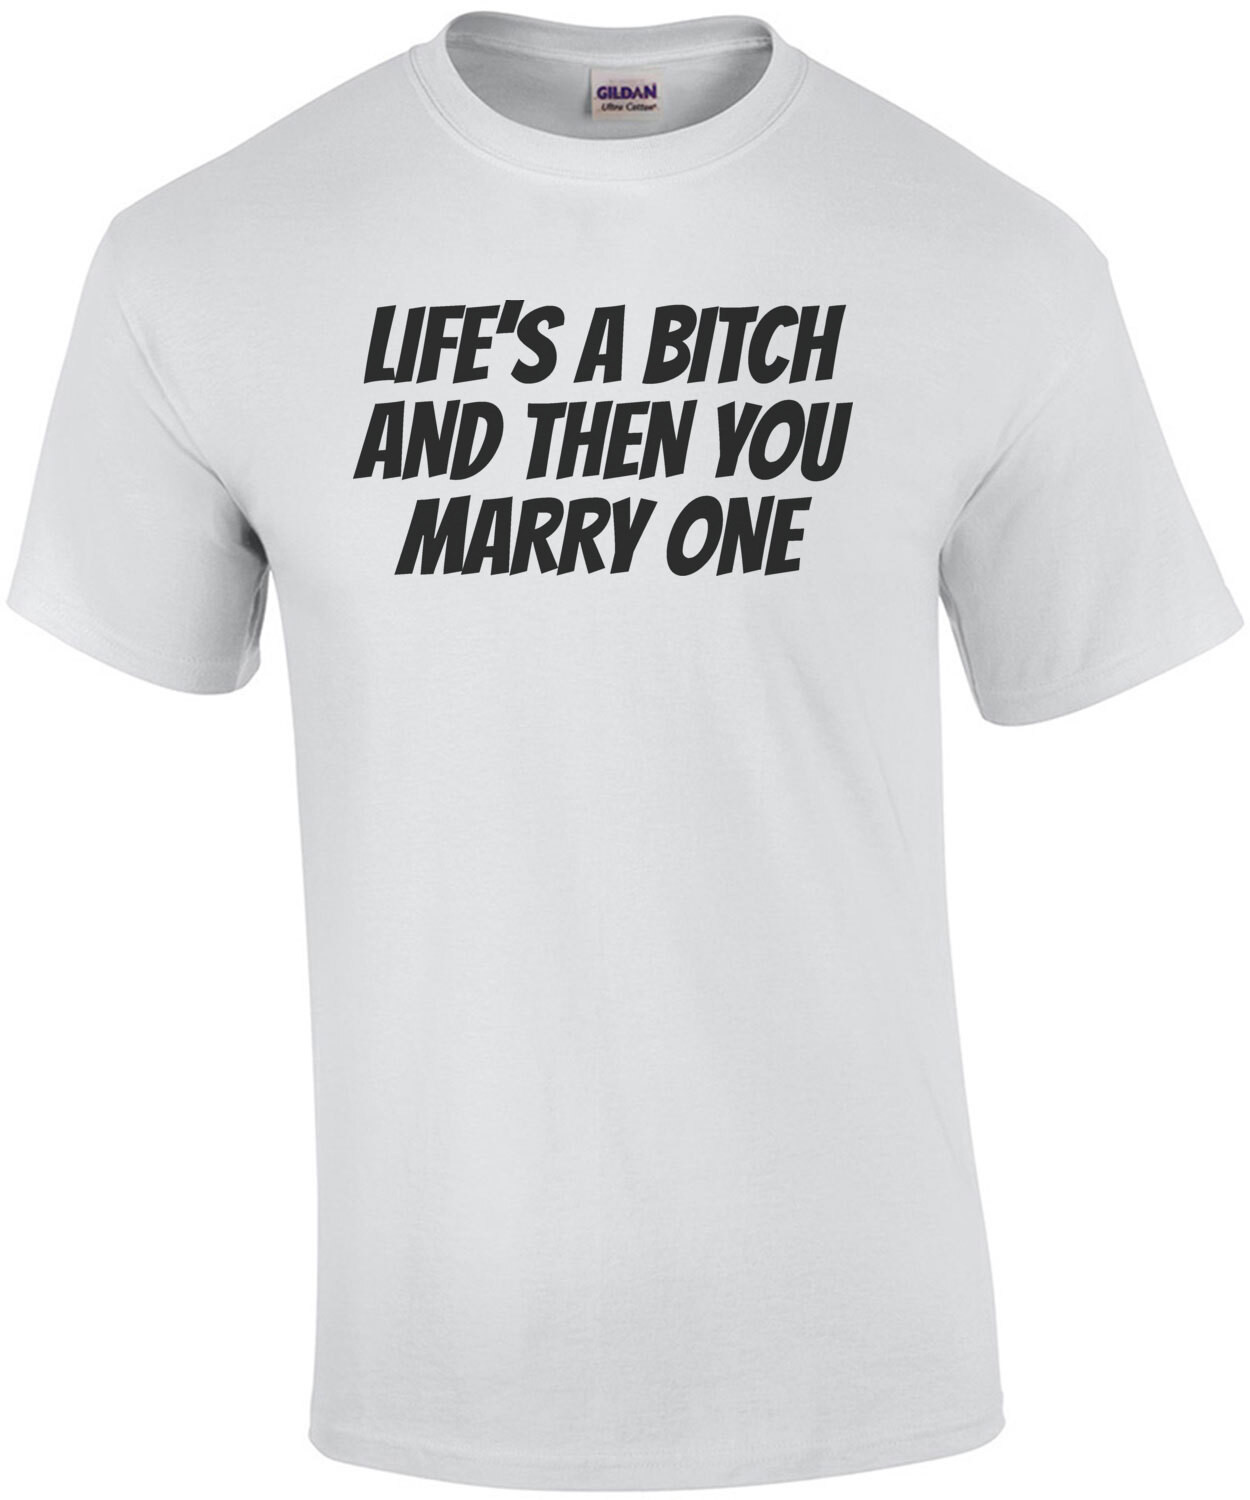 Life's a bitch and then you marry one - funny t-shirt